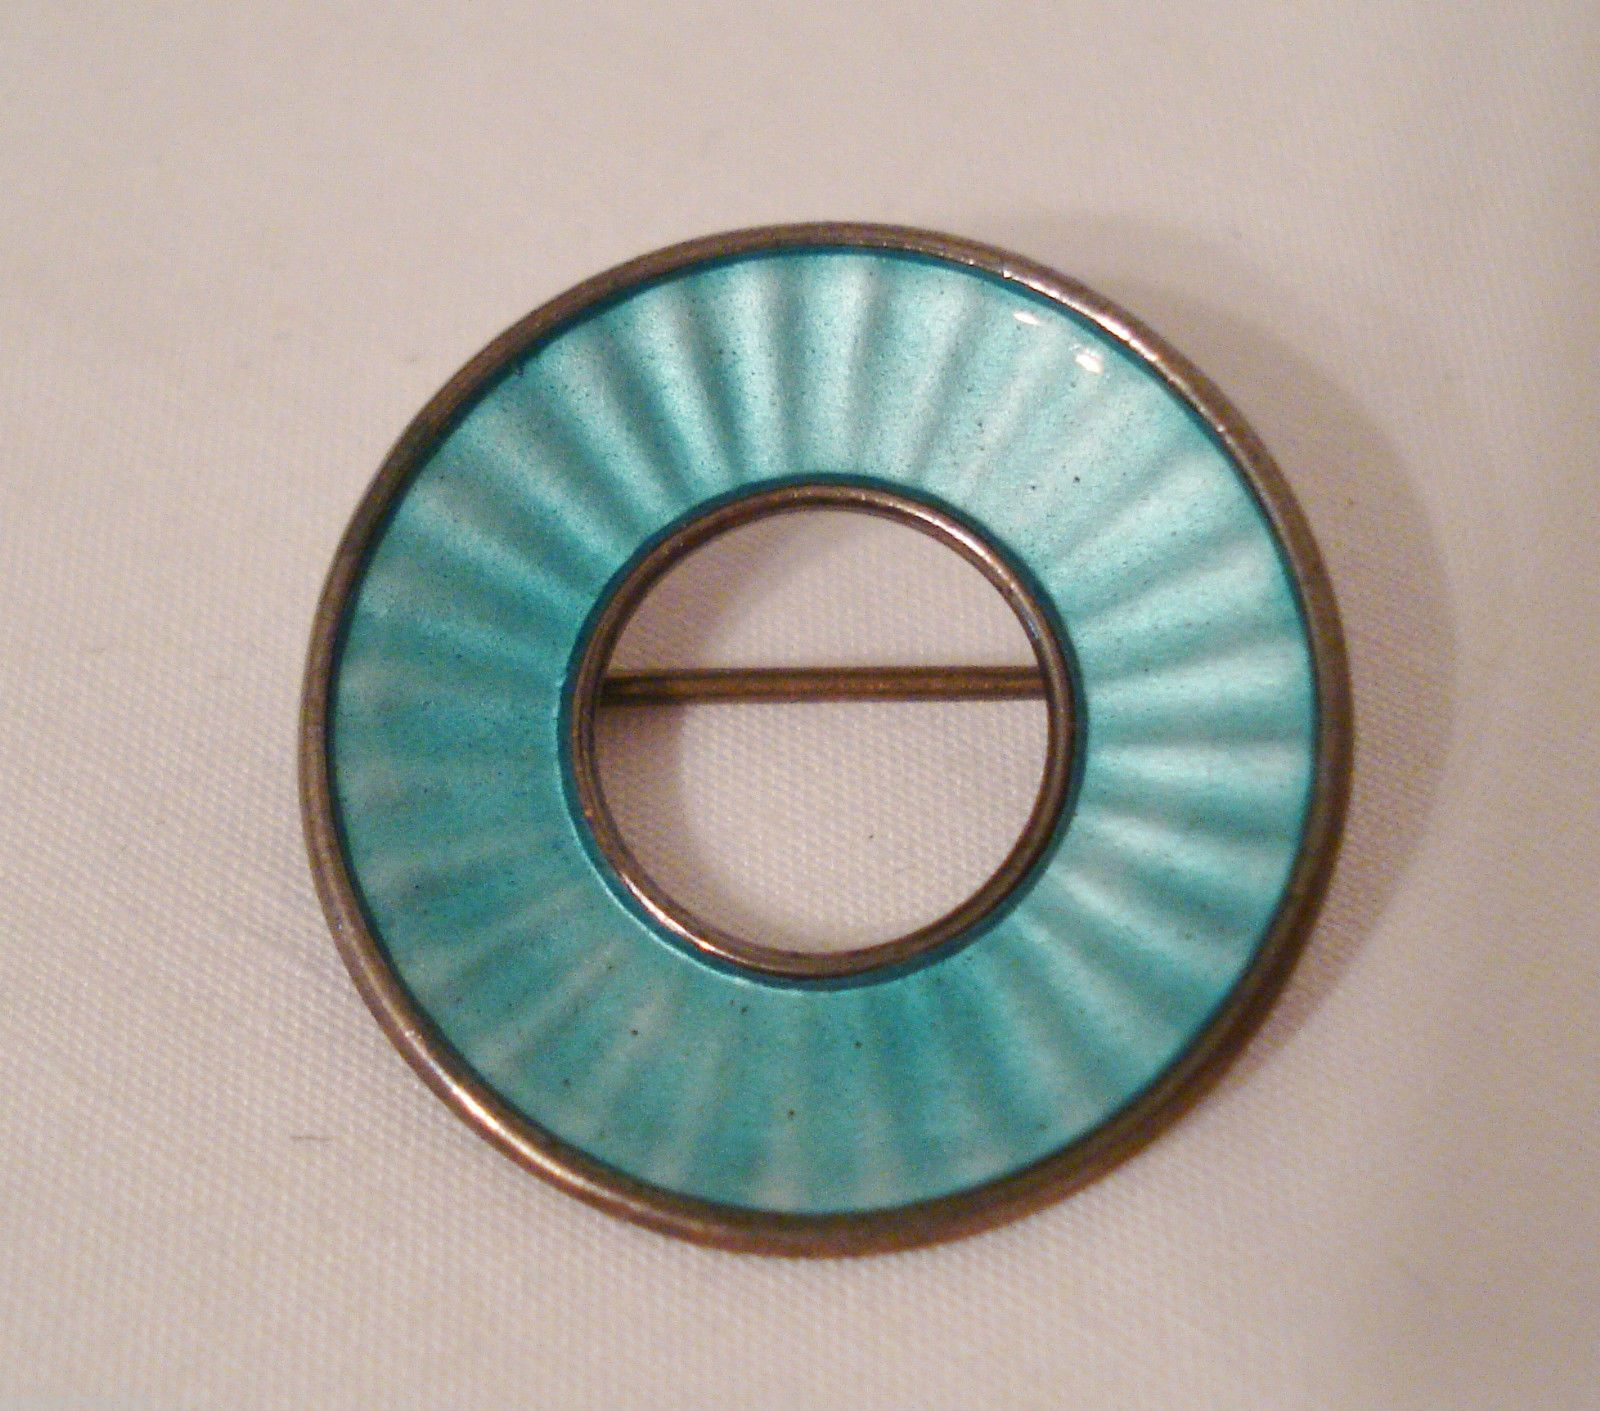 EINER Modhal blue circle enamel modernist brooch